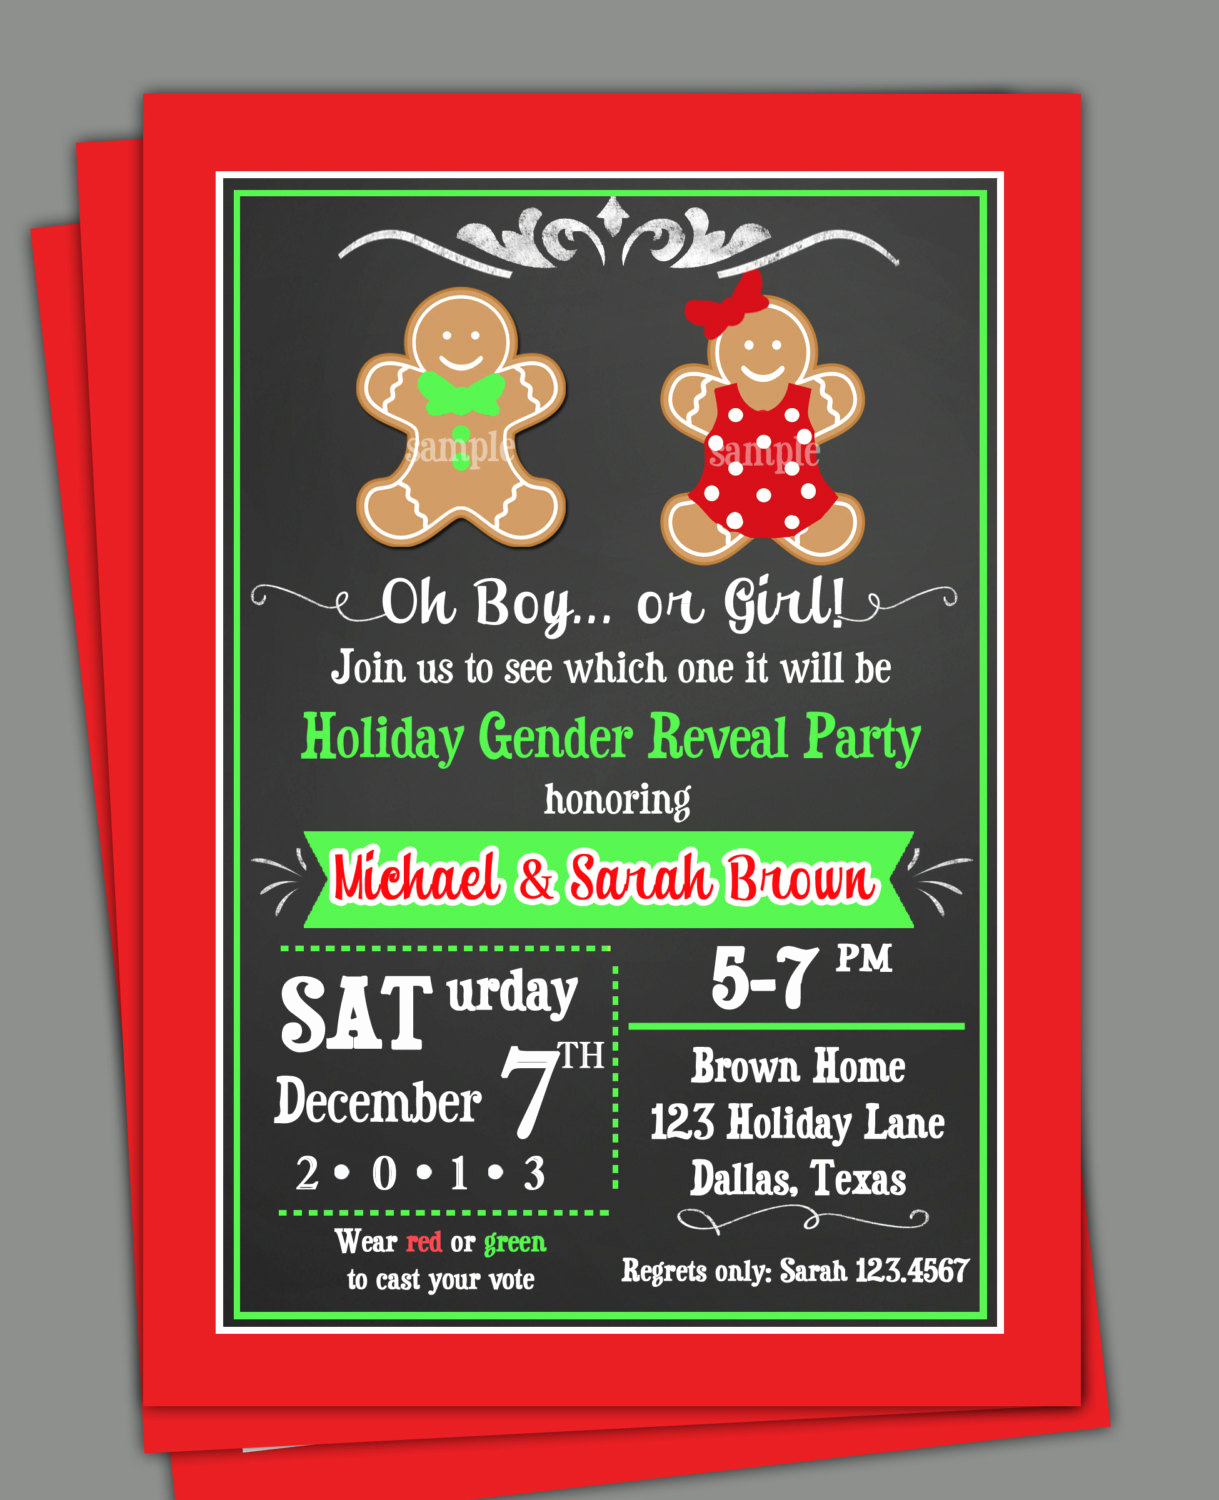 Gender Reveal Invitation Wording Best Of Christmas Gender Reveal Invitation Printable or Printed with